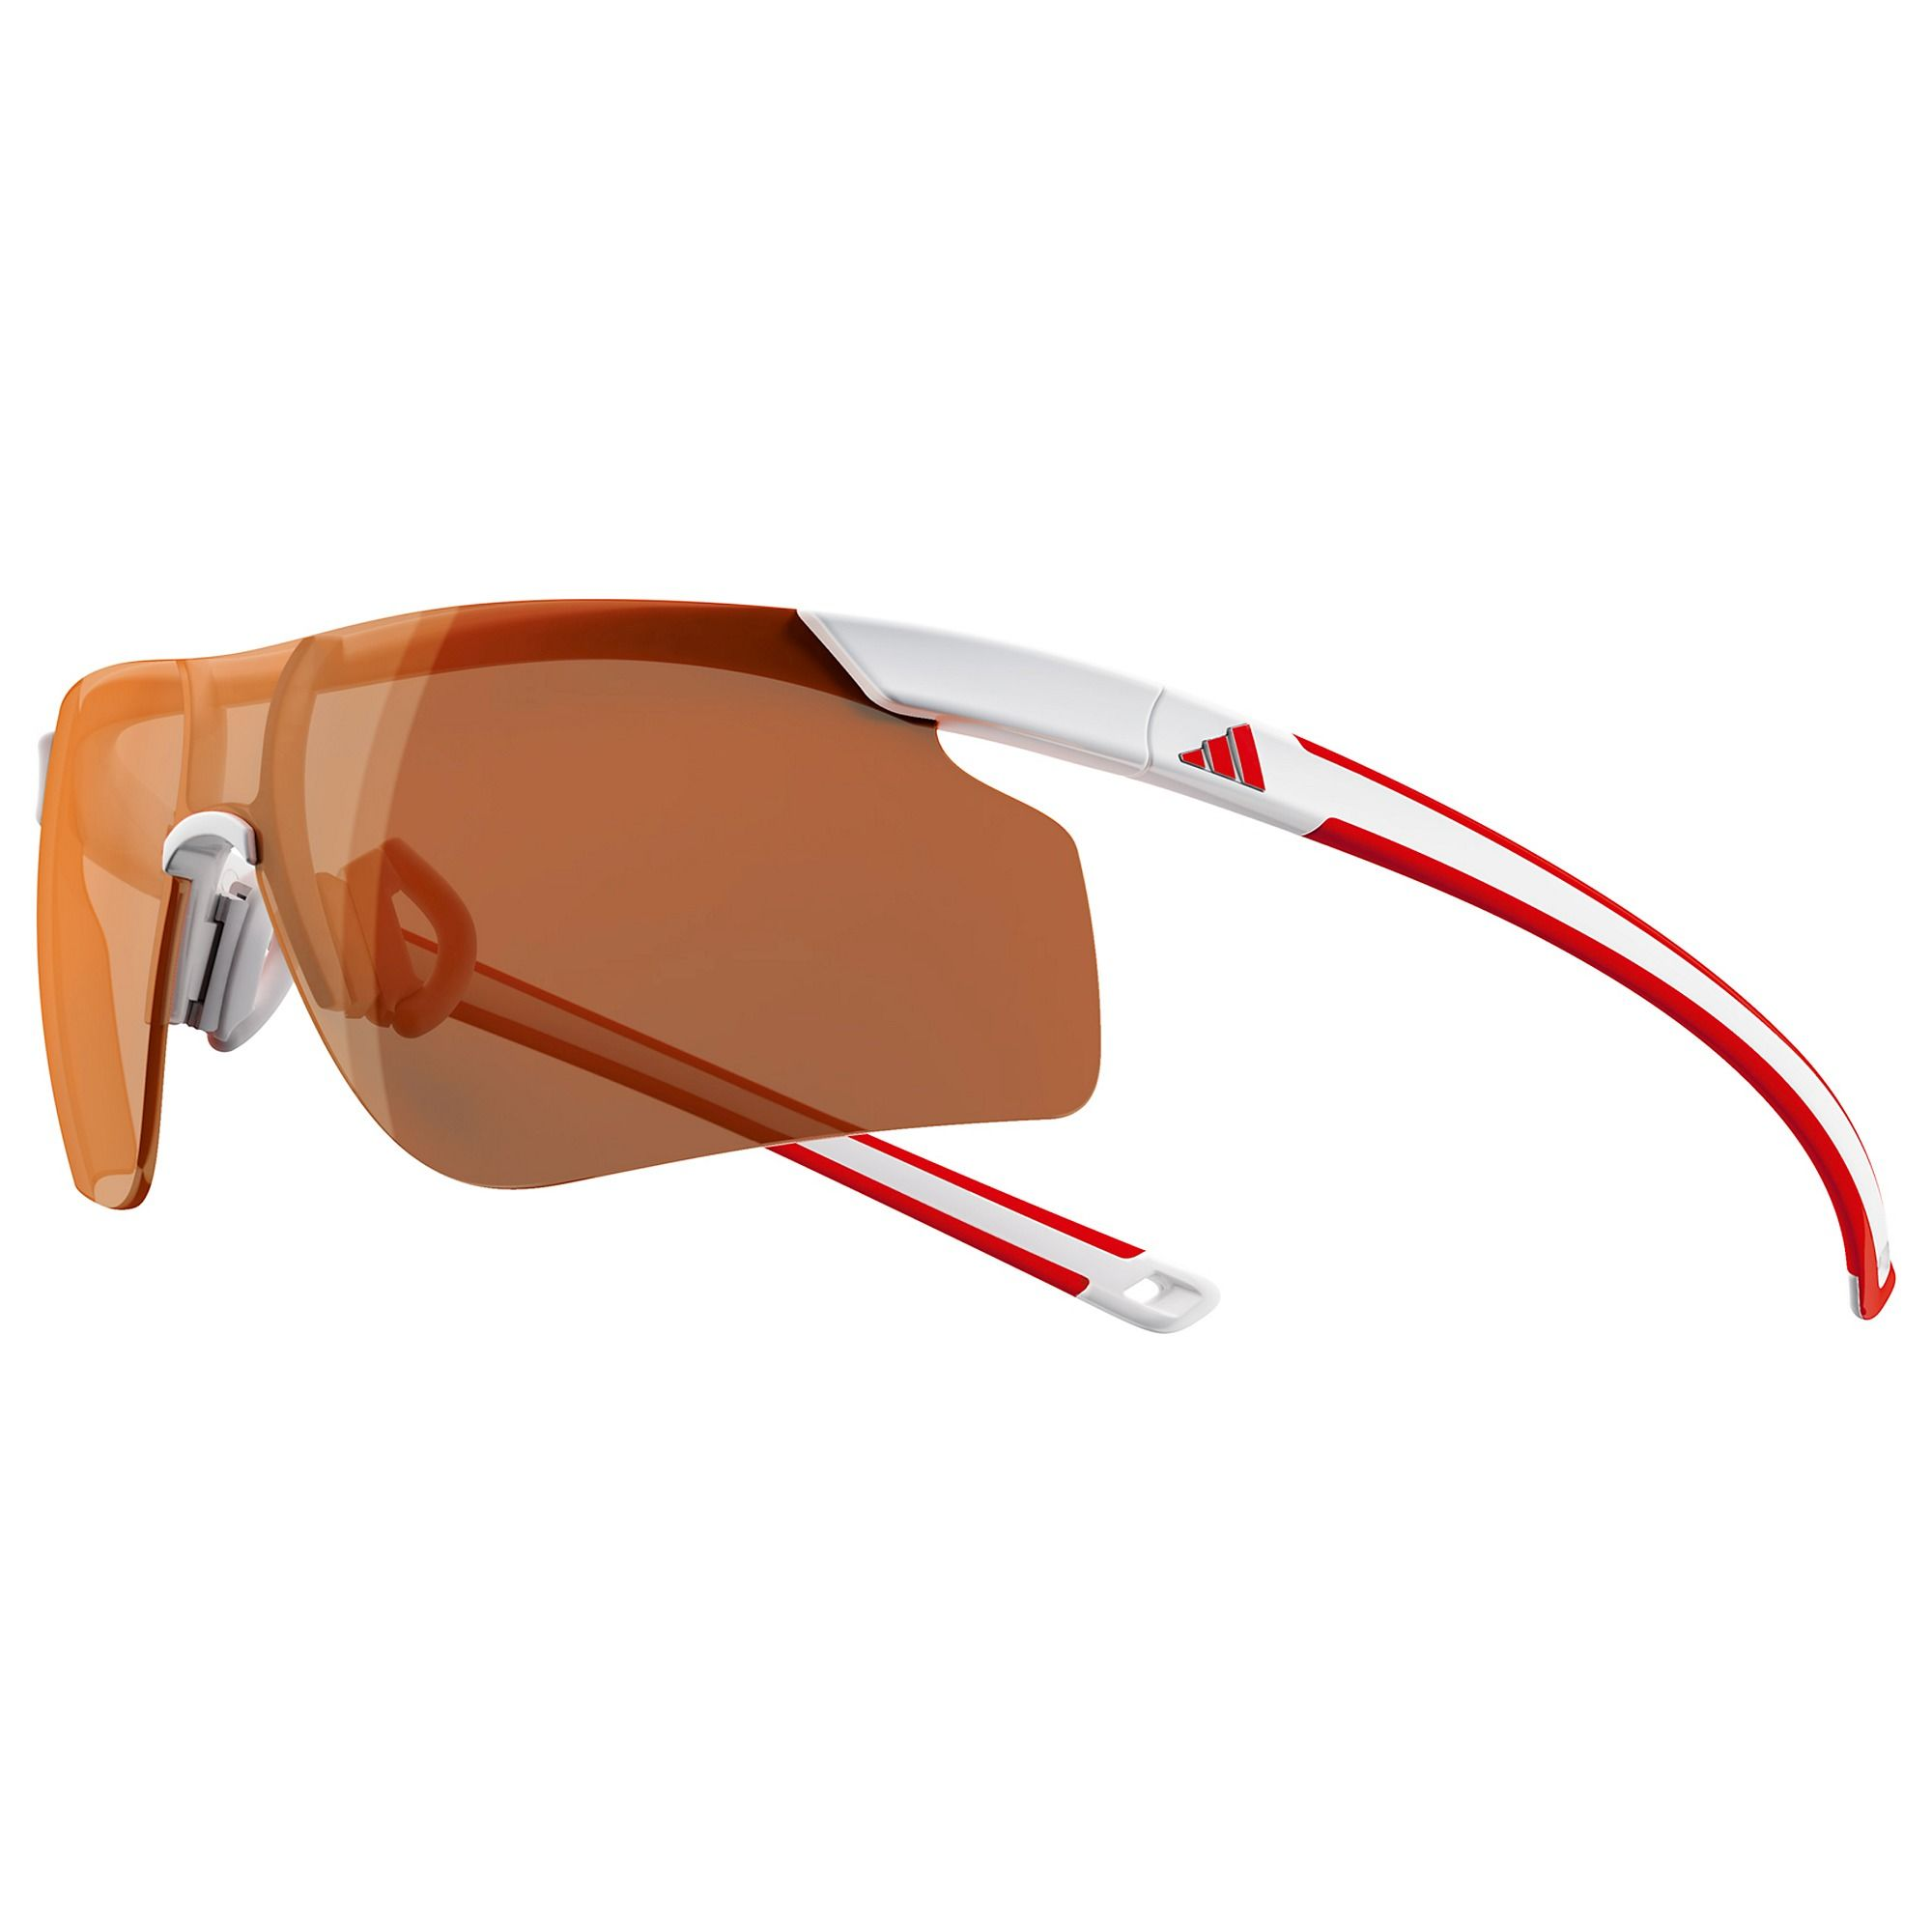 f22e9a802c6a The Adidas  Adizero Tempo sport glasses not only look the part